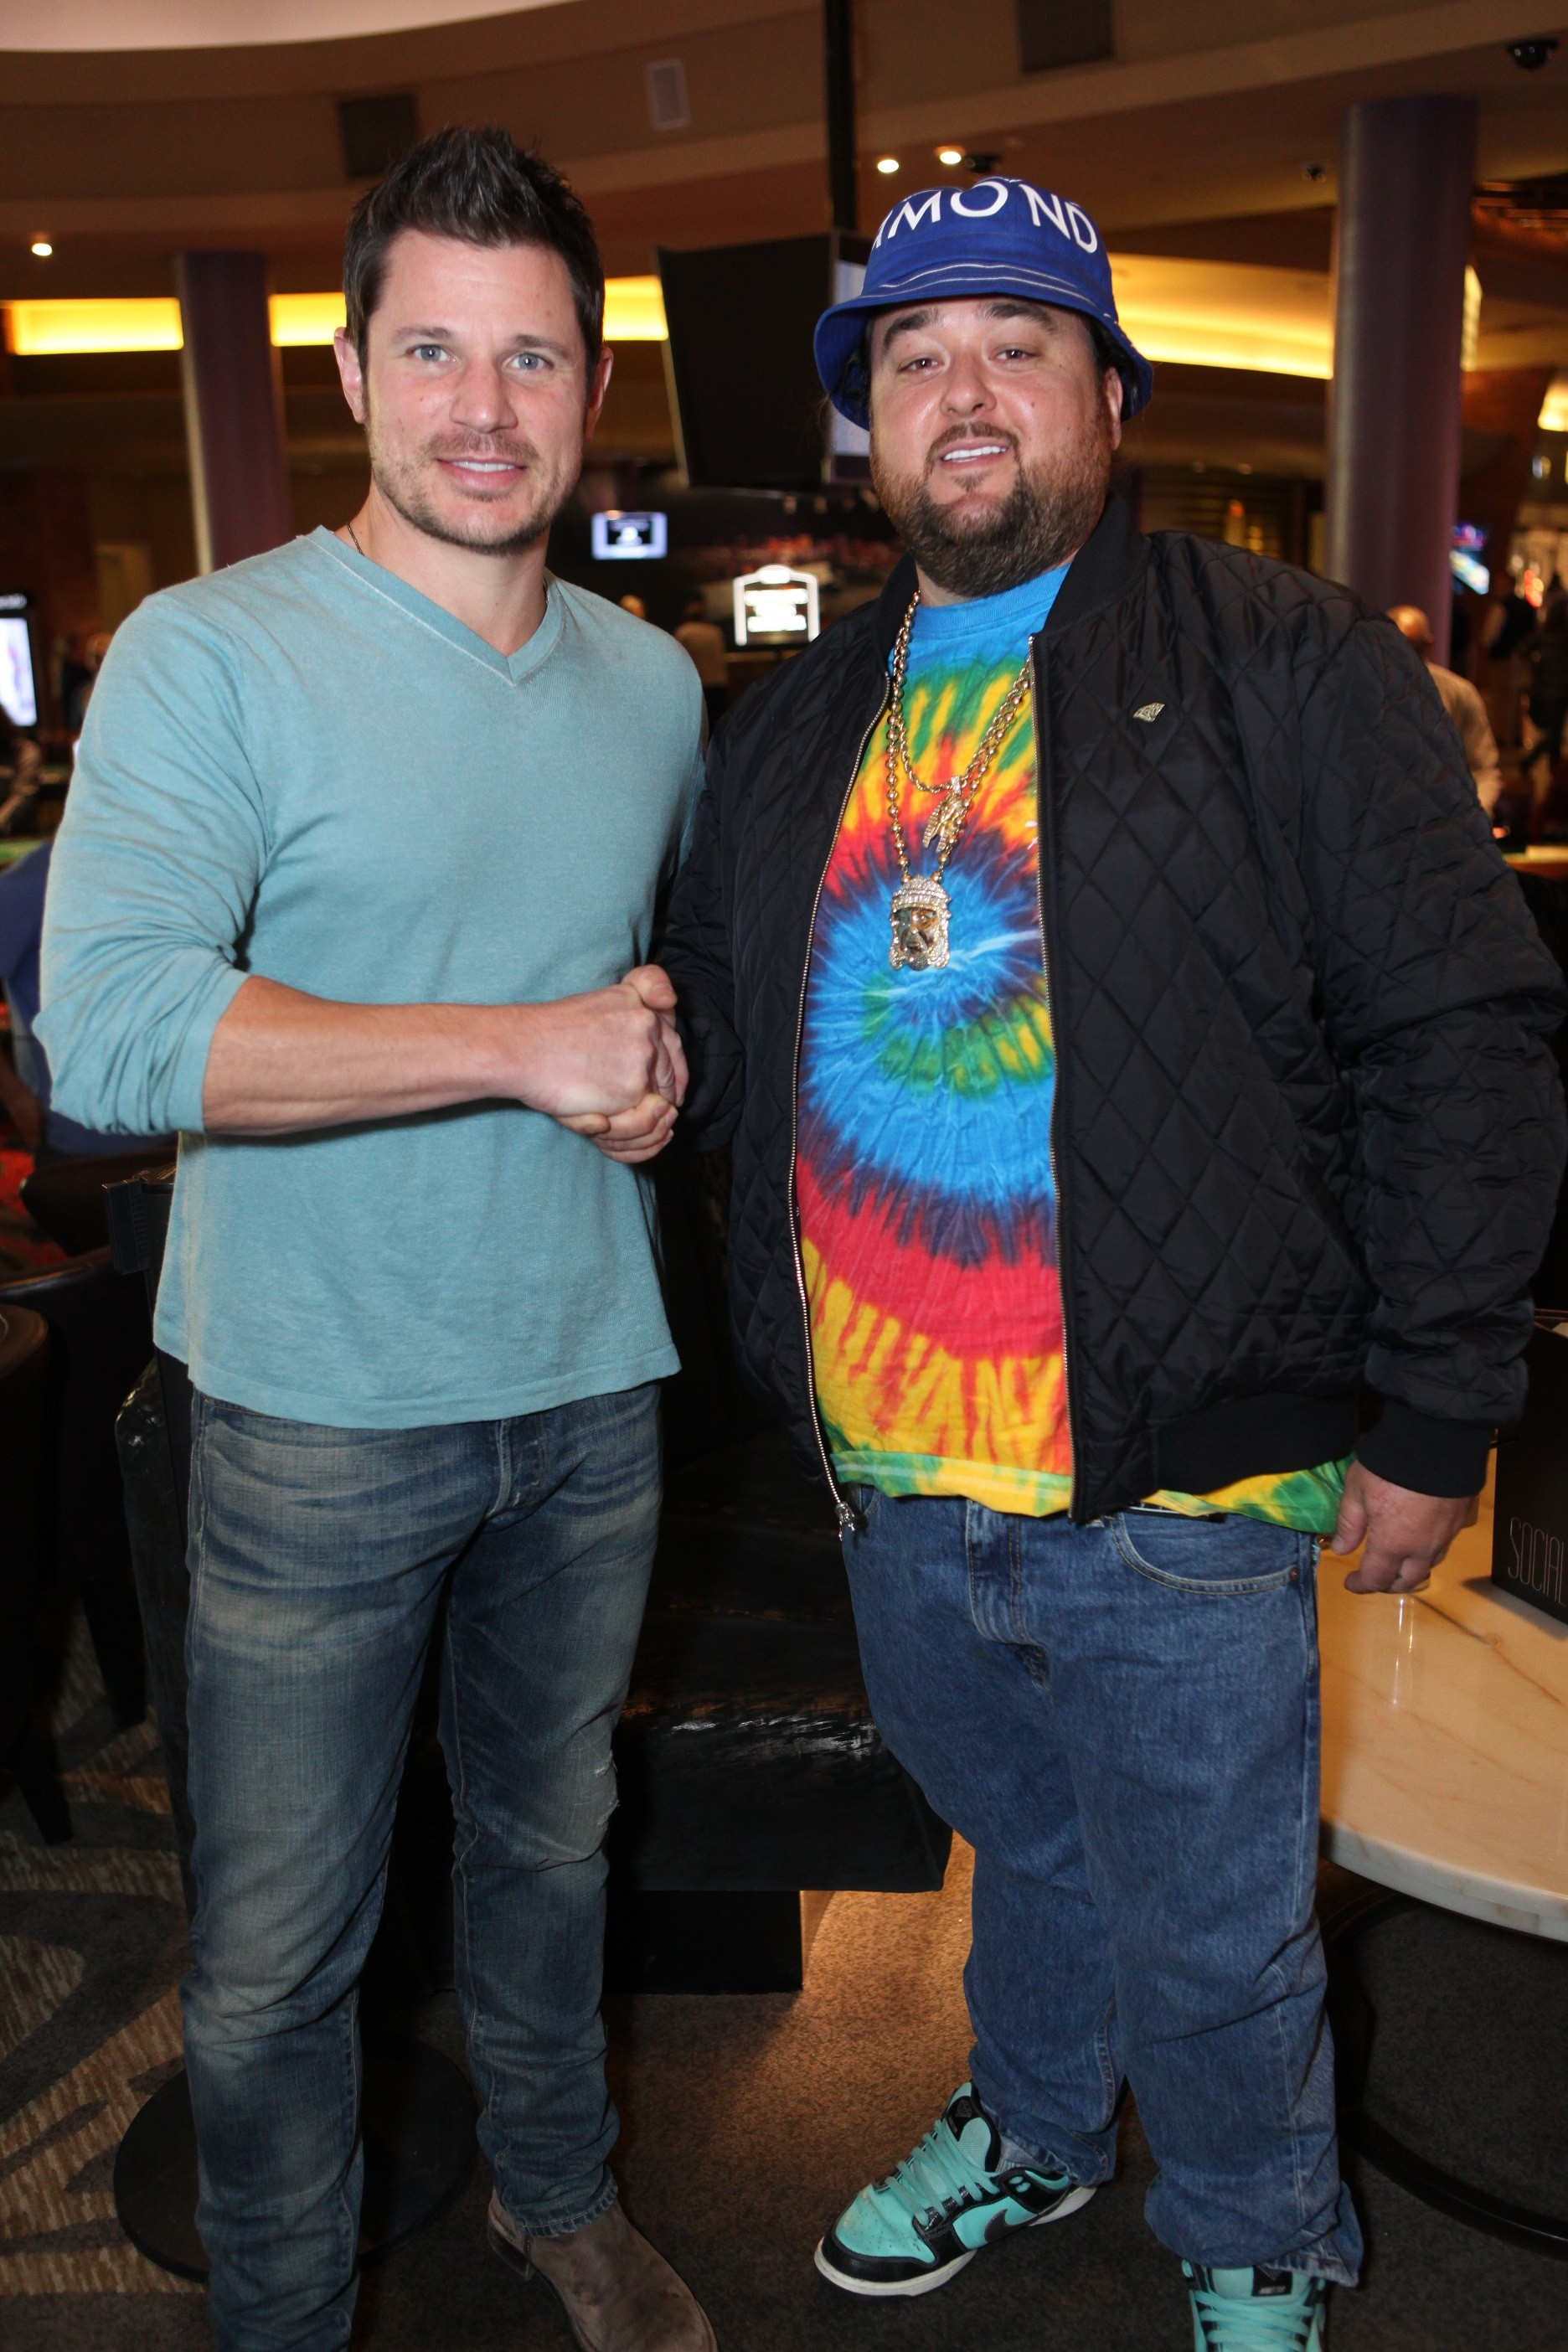 Nick Lachey bumped into Pawn Star's Chumlee at SOCIAL at the Palms Casino on Feb. 28, 2015, in Las Vegas. (Joe Fury)